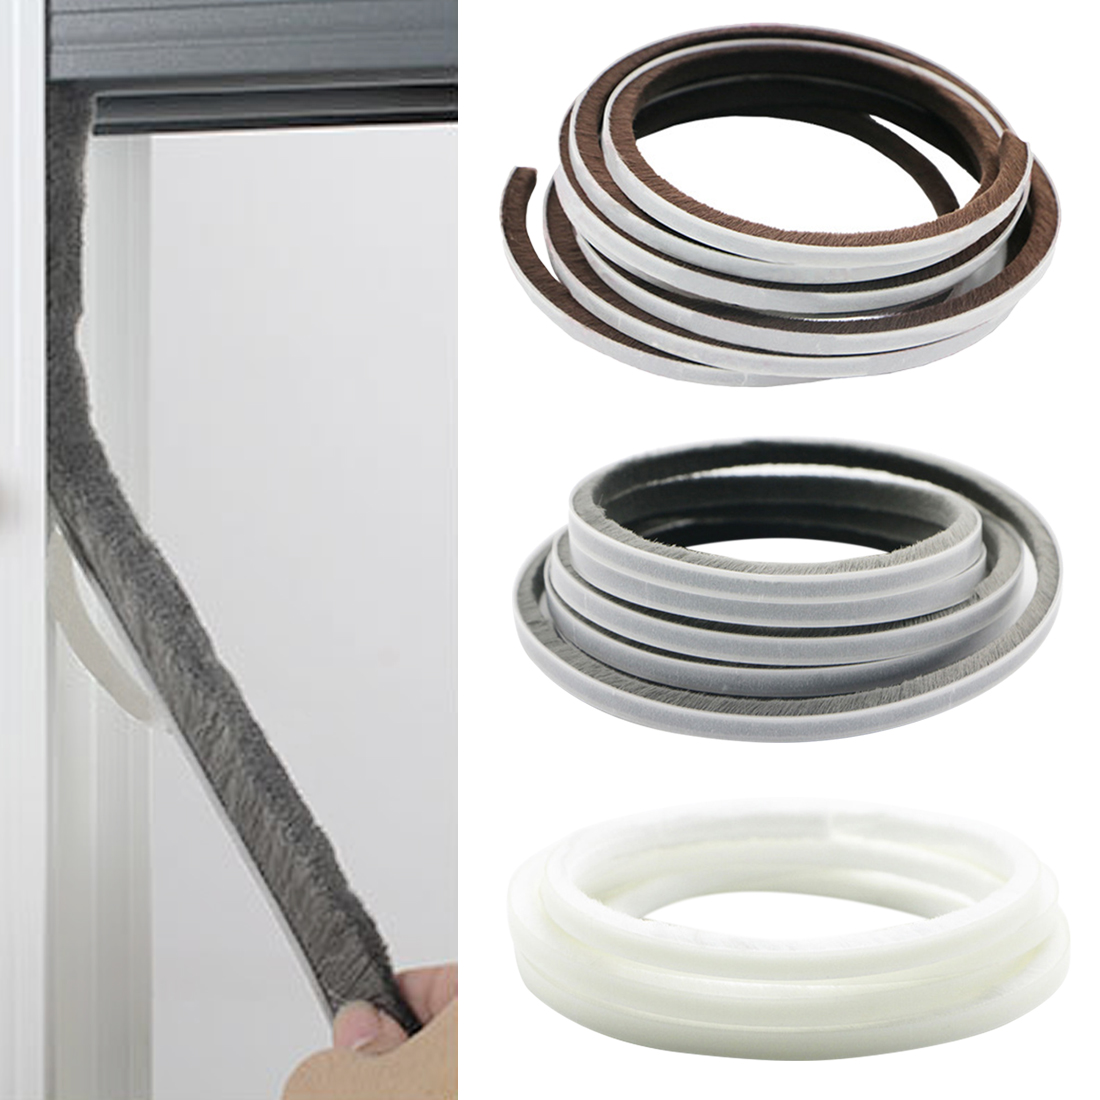 5M Self Adhesive Seal Strip Door Draught Excluder Window Pile Seal Film Door Brush Swal Weather Strip For Door Protector Strip